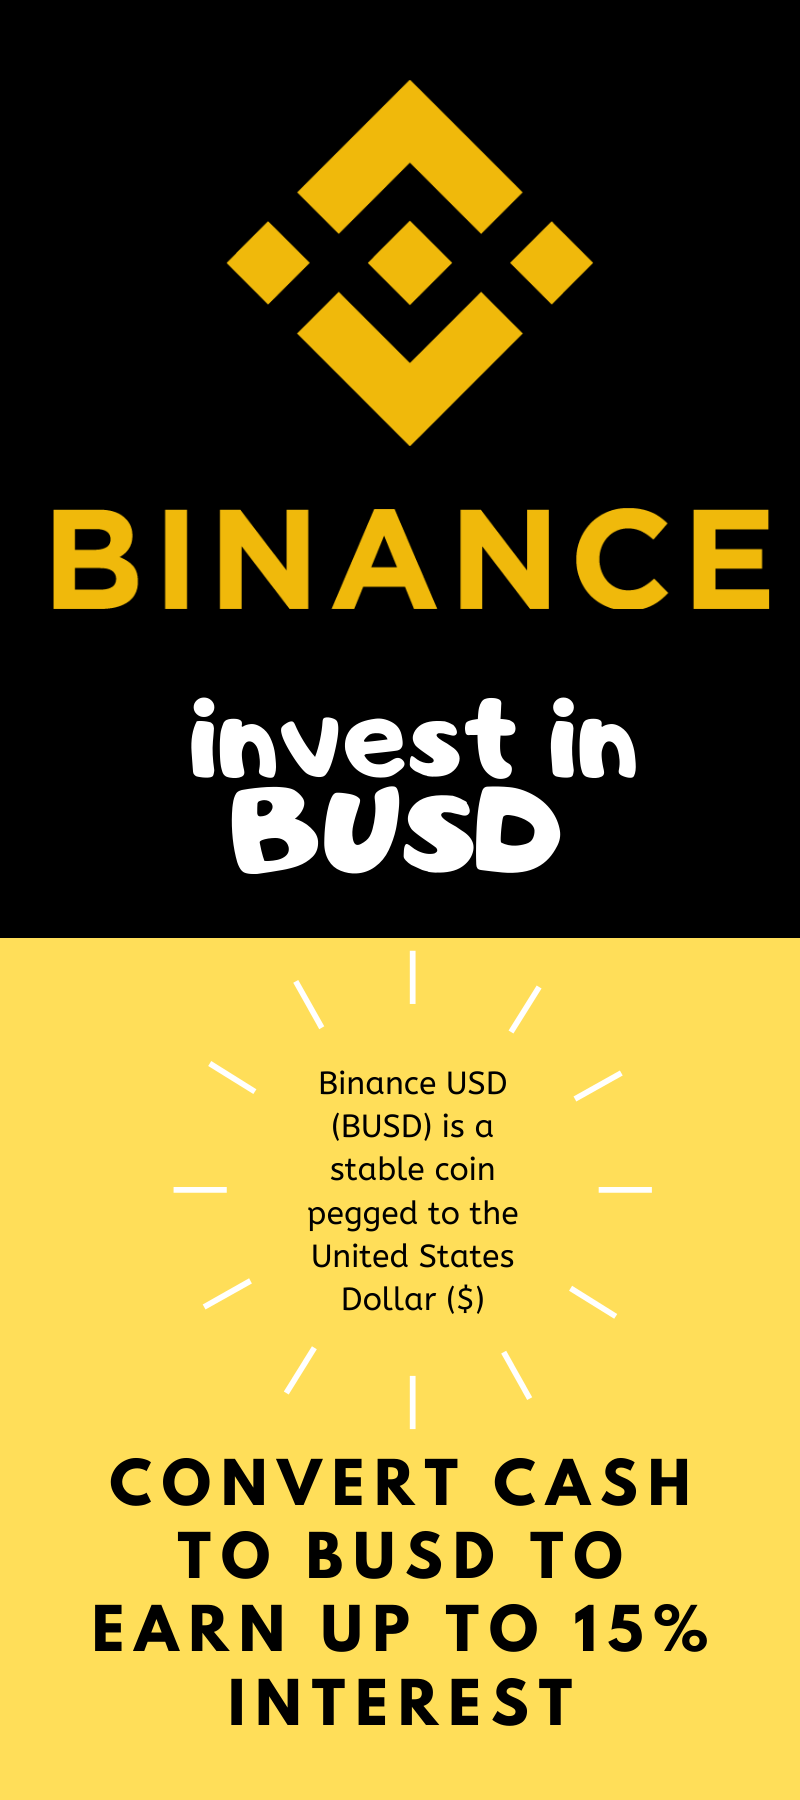 Binance Usd In 2020 About Me Blog Investing Financial Services